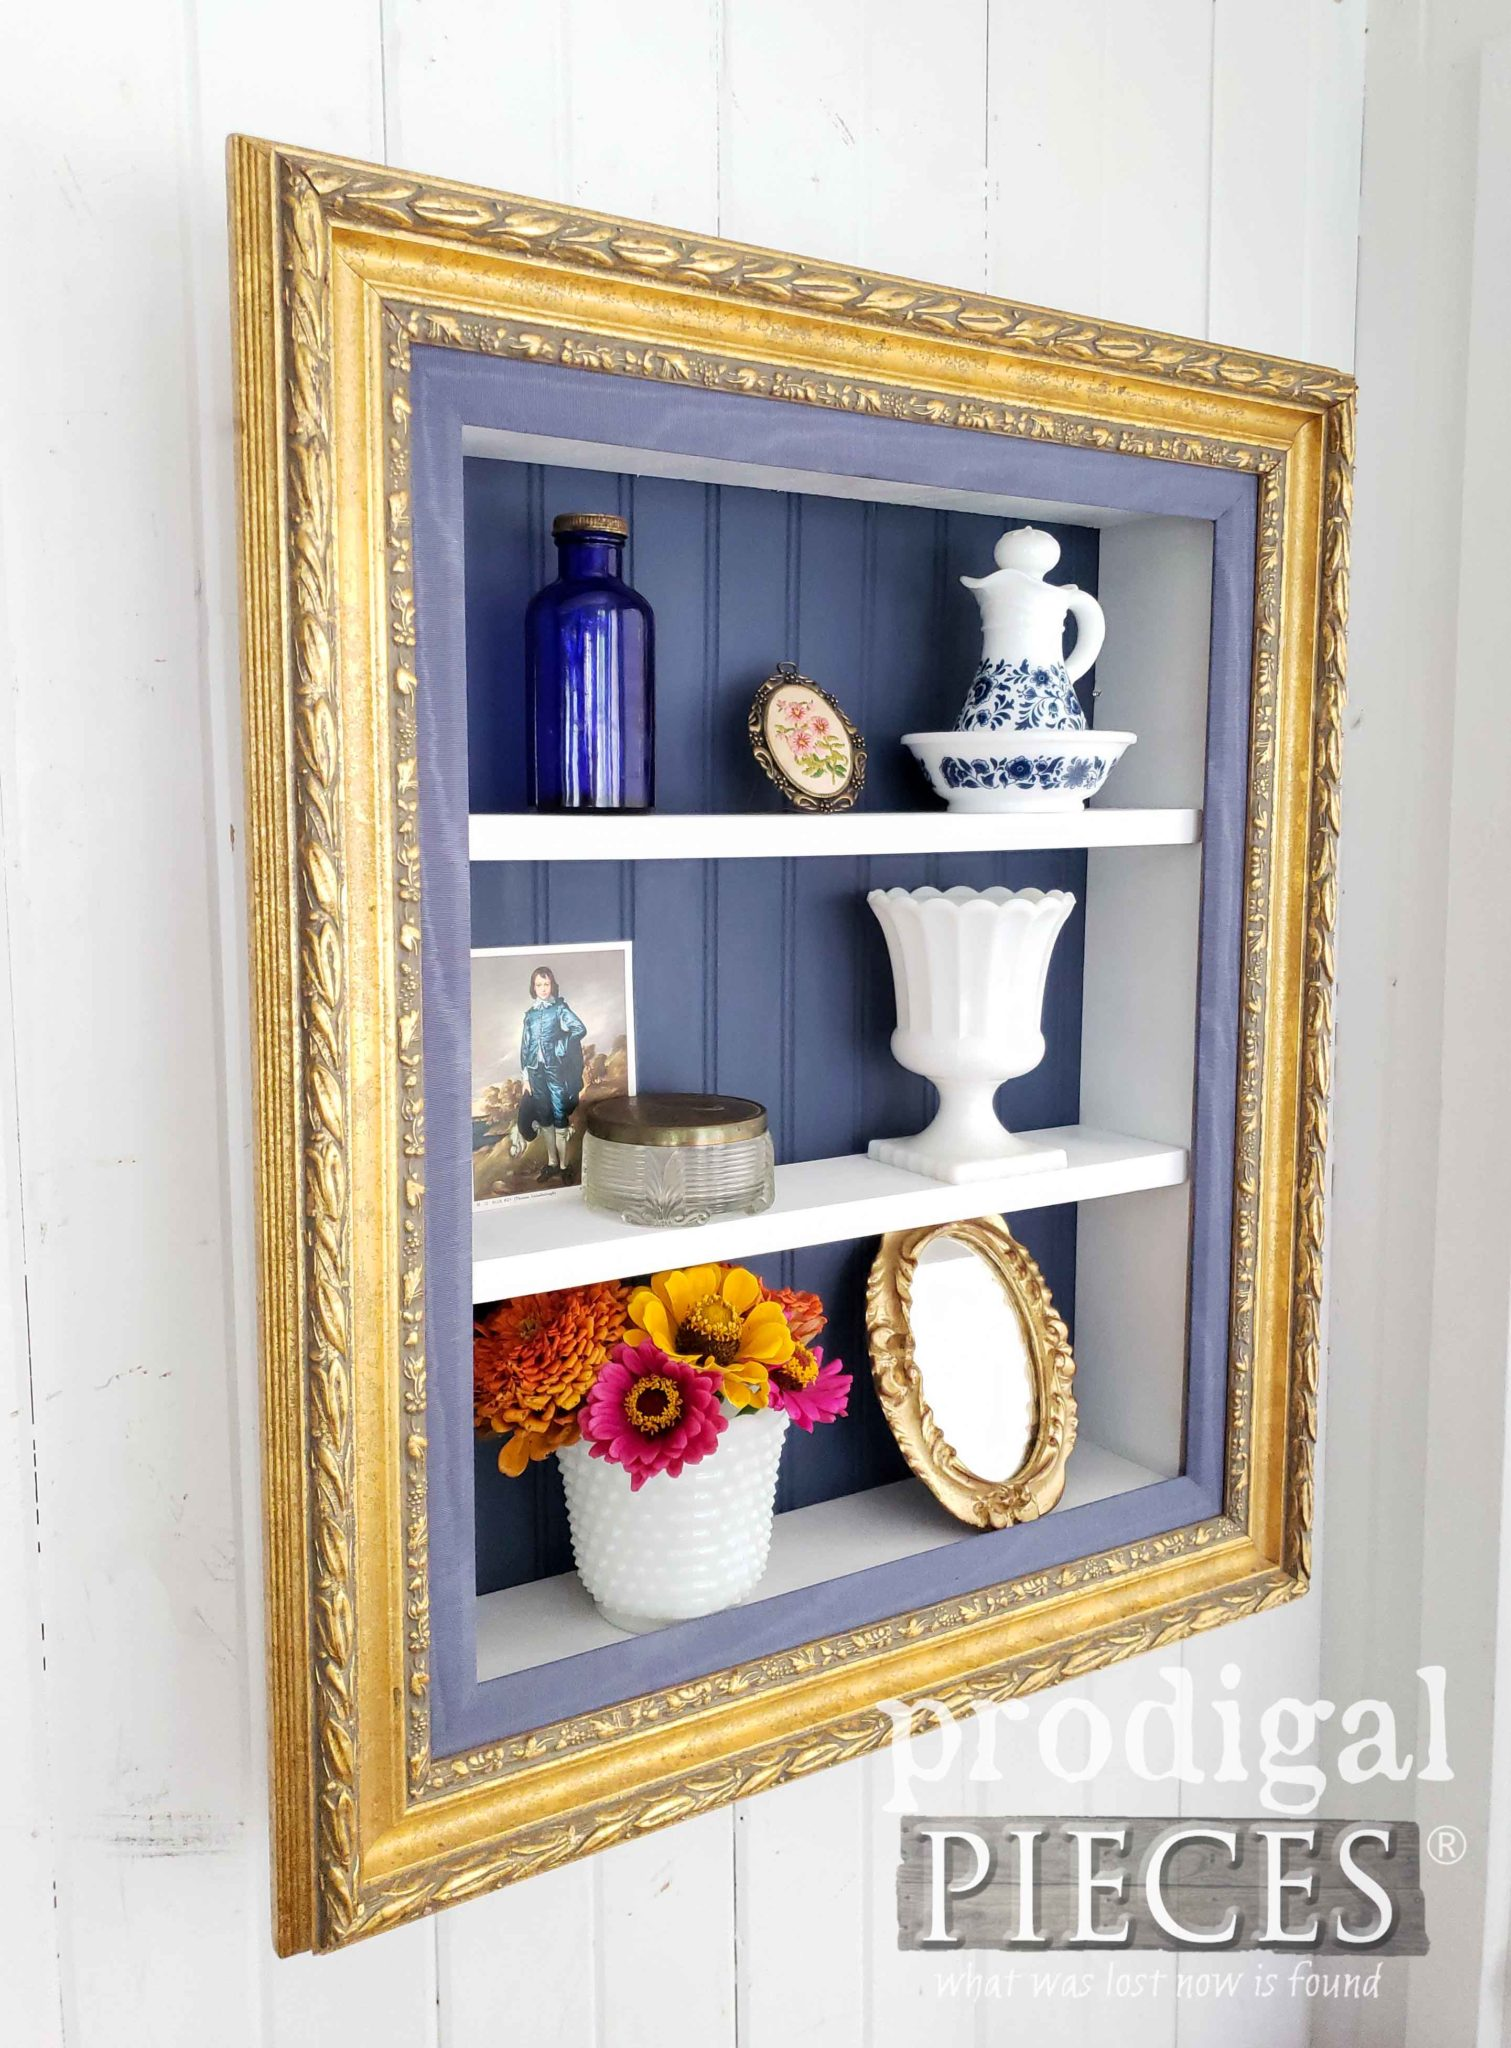 Royal Blue Gilded Repurposed Picture Frame Shelf Built by Larissa of Prodigal Pieces | prodigalpieces.com